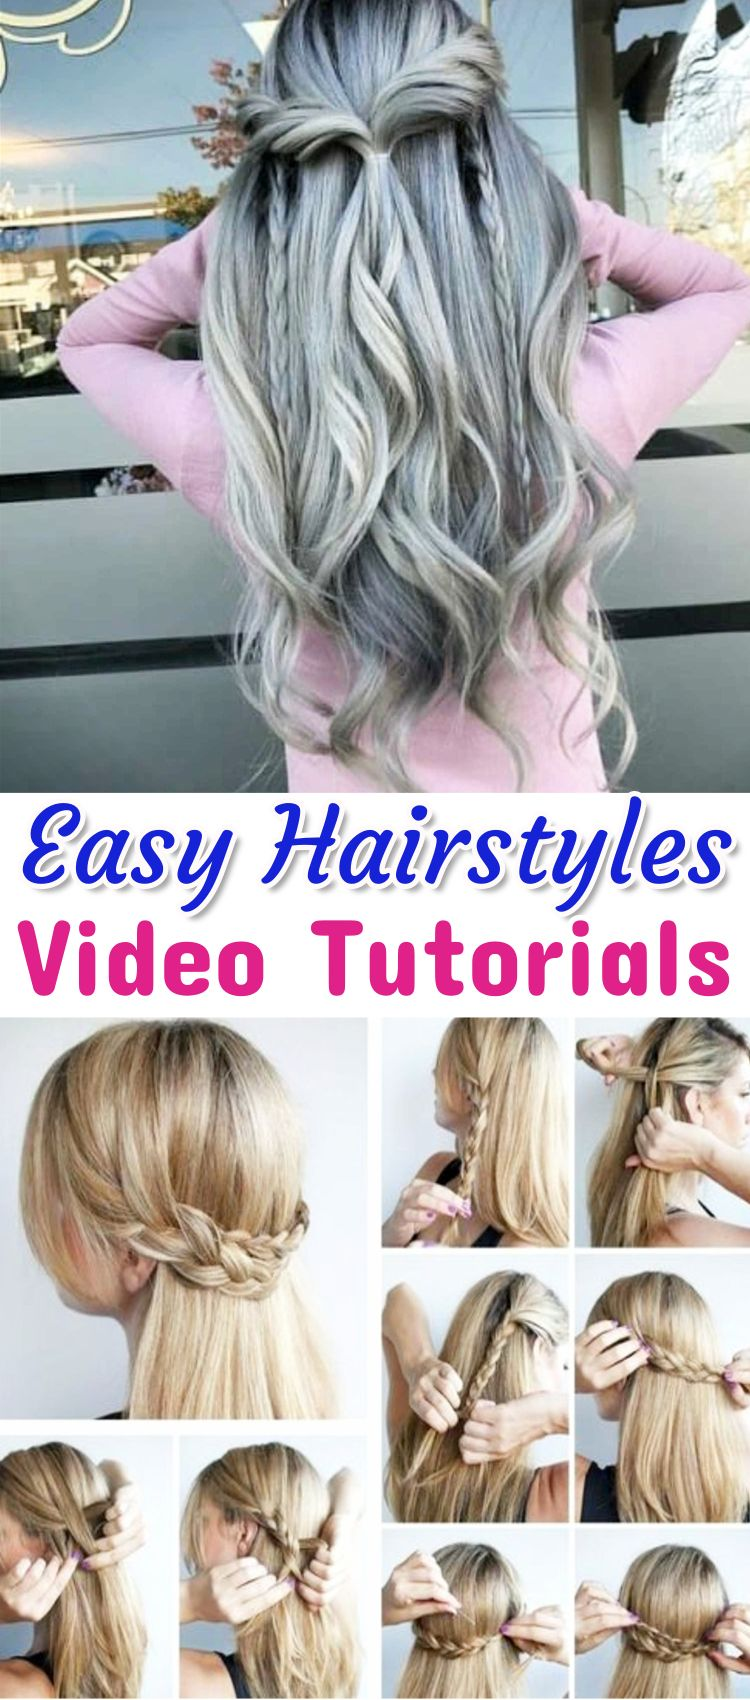 10 Easy Lazy Girl Hairstyle Ideas Step By Step Video Tutorials For Lazy Day Running Late Quick Hairstyles Clever Diy Ideas Lazy Girl Hairstyles Easy Everyday Hairstyles Lazy Hairstyles